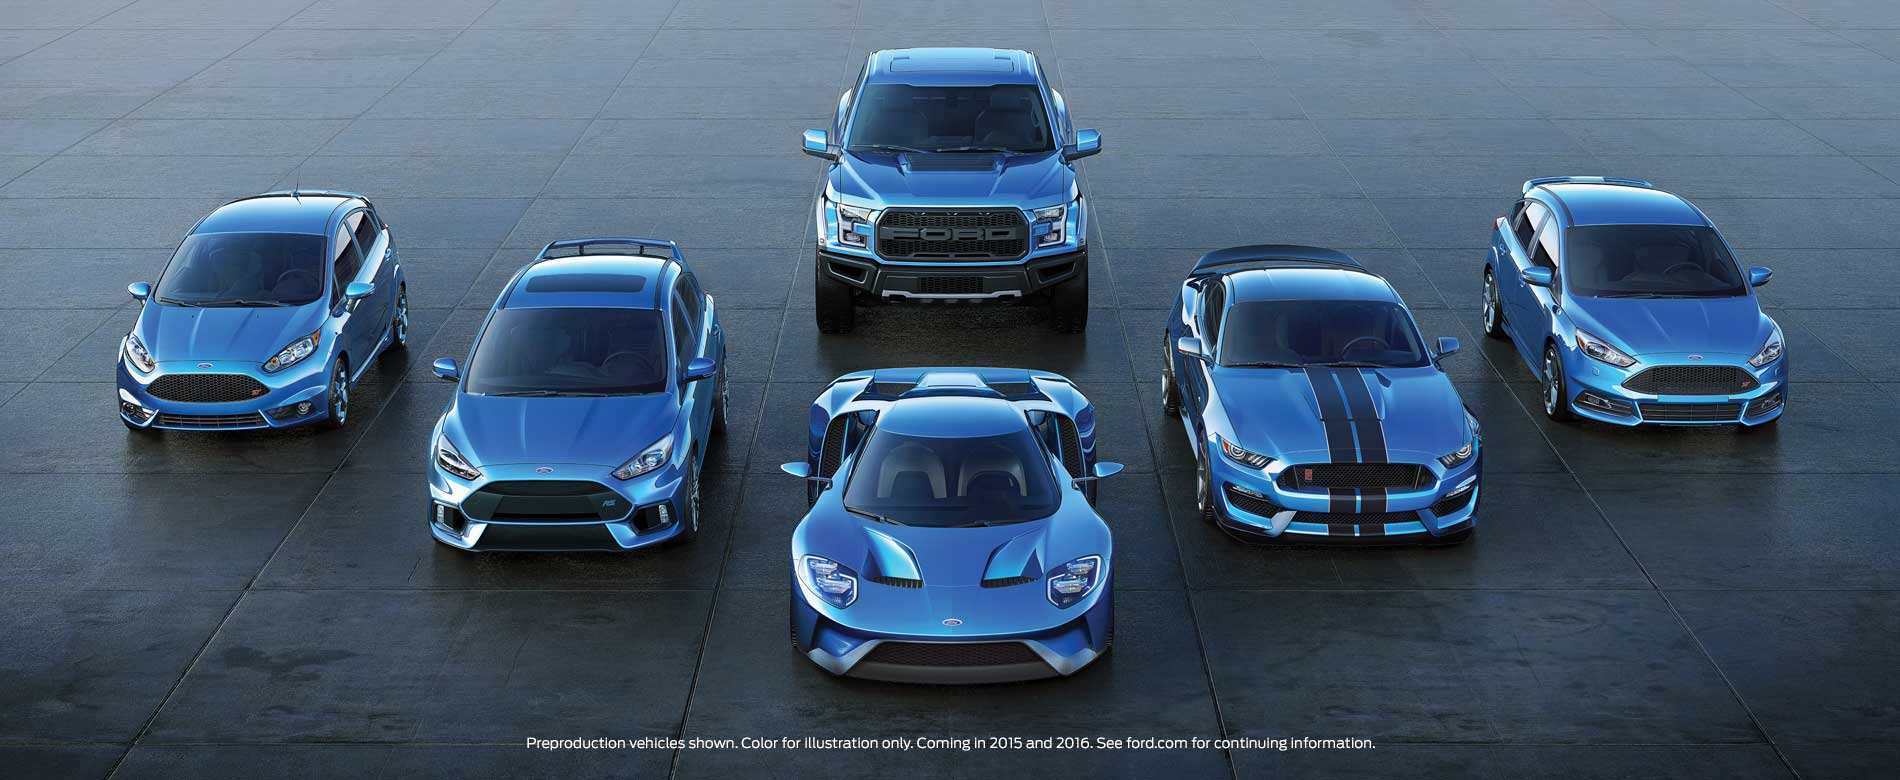 74 All New Ford Performance Vehicles By 2020 History